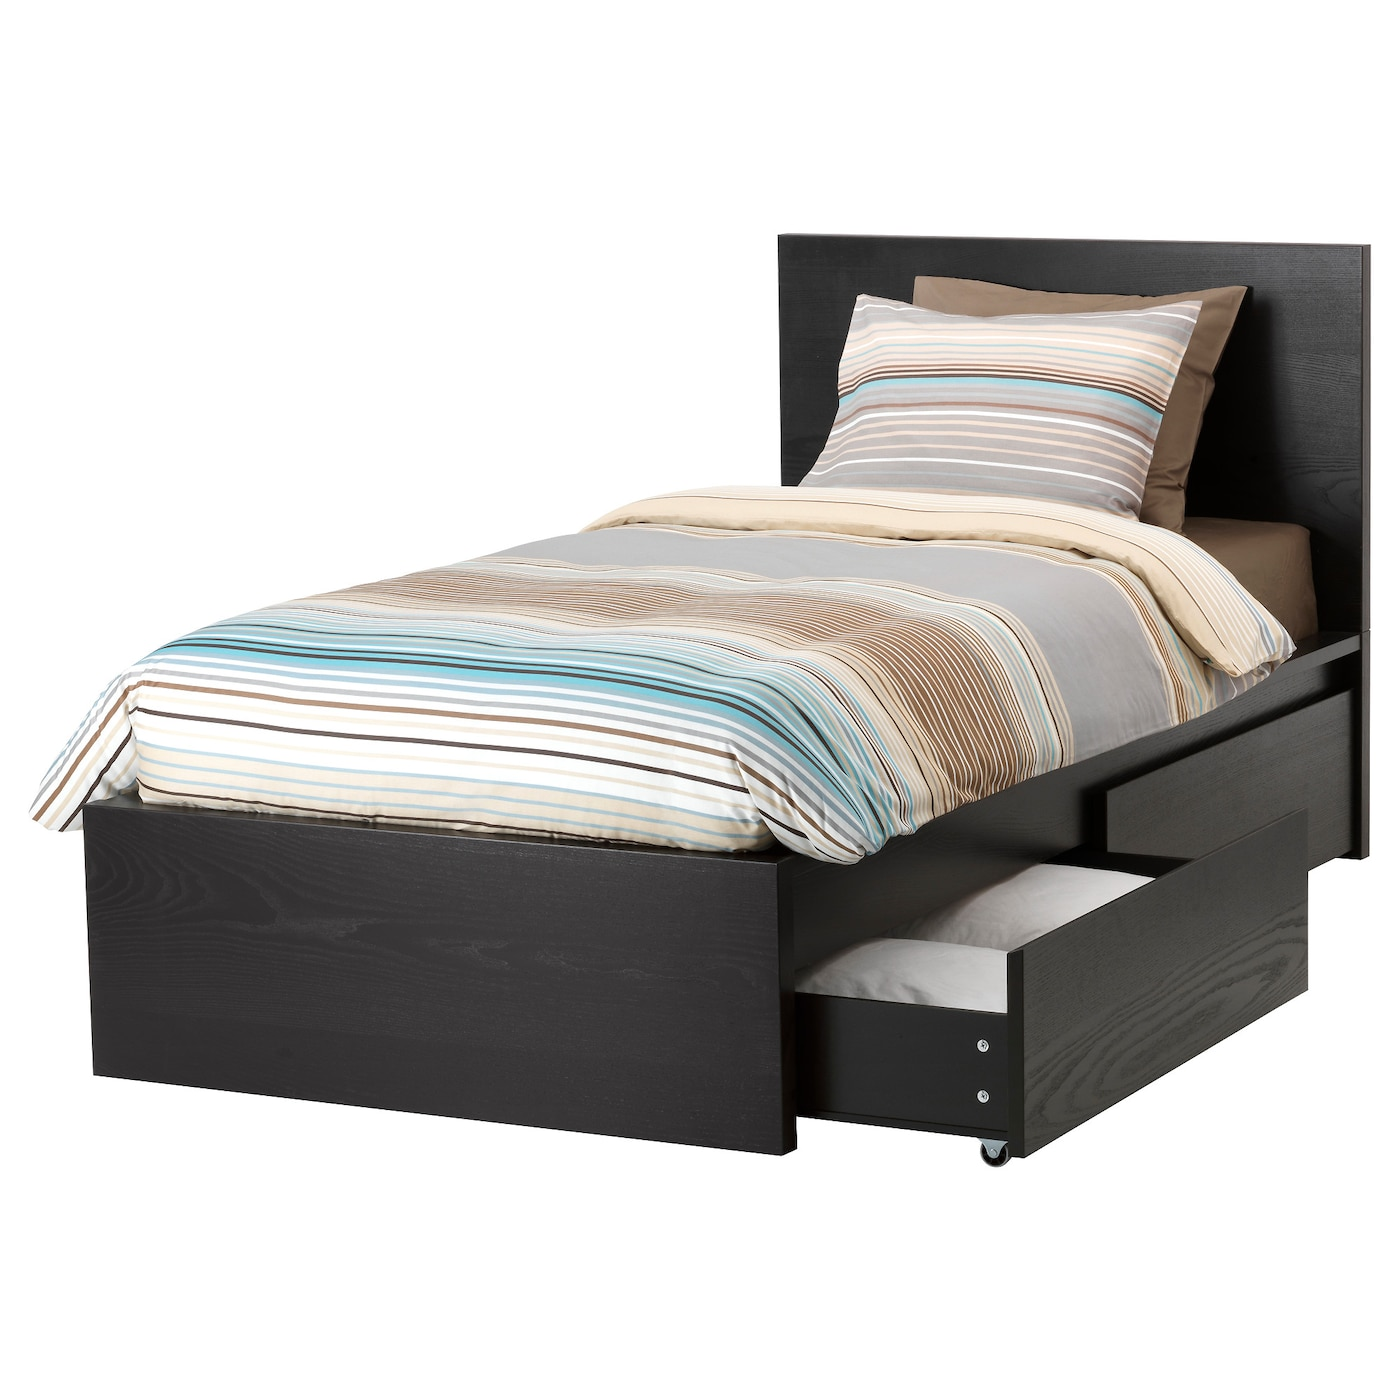 malm cadre de lit haut 2 rangements brun noir 90 x 200 cm ikea. Black Bedroom Furniture Sets. Home Design Ideas